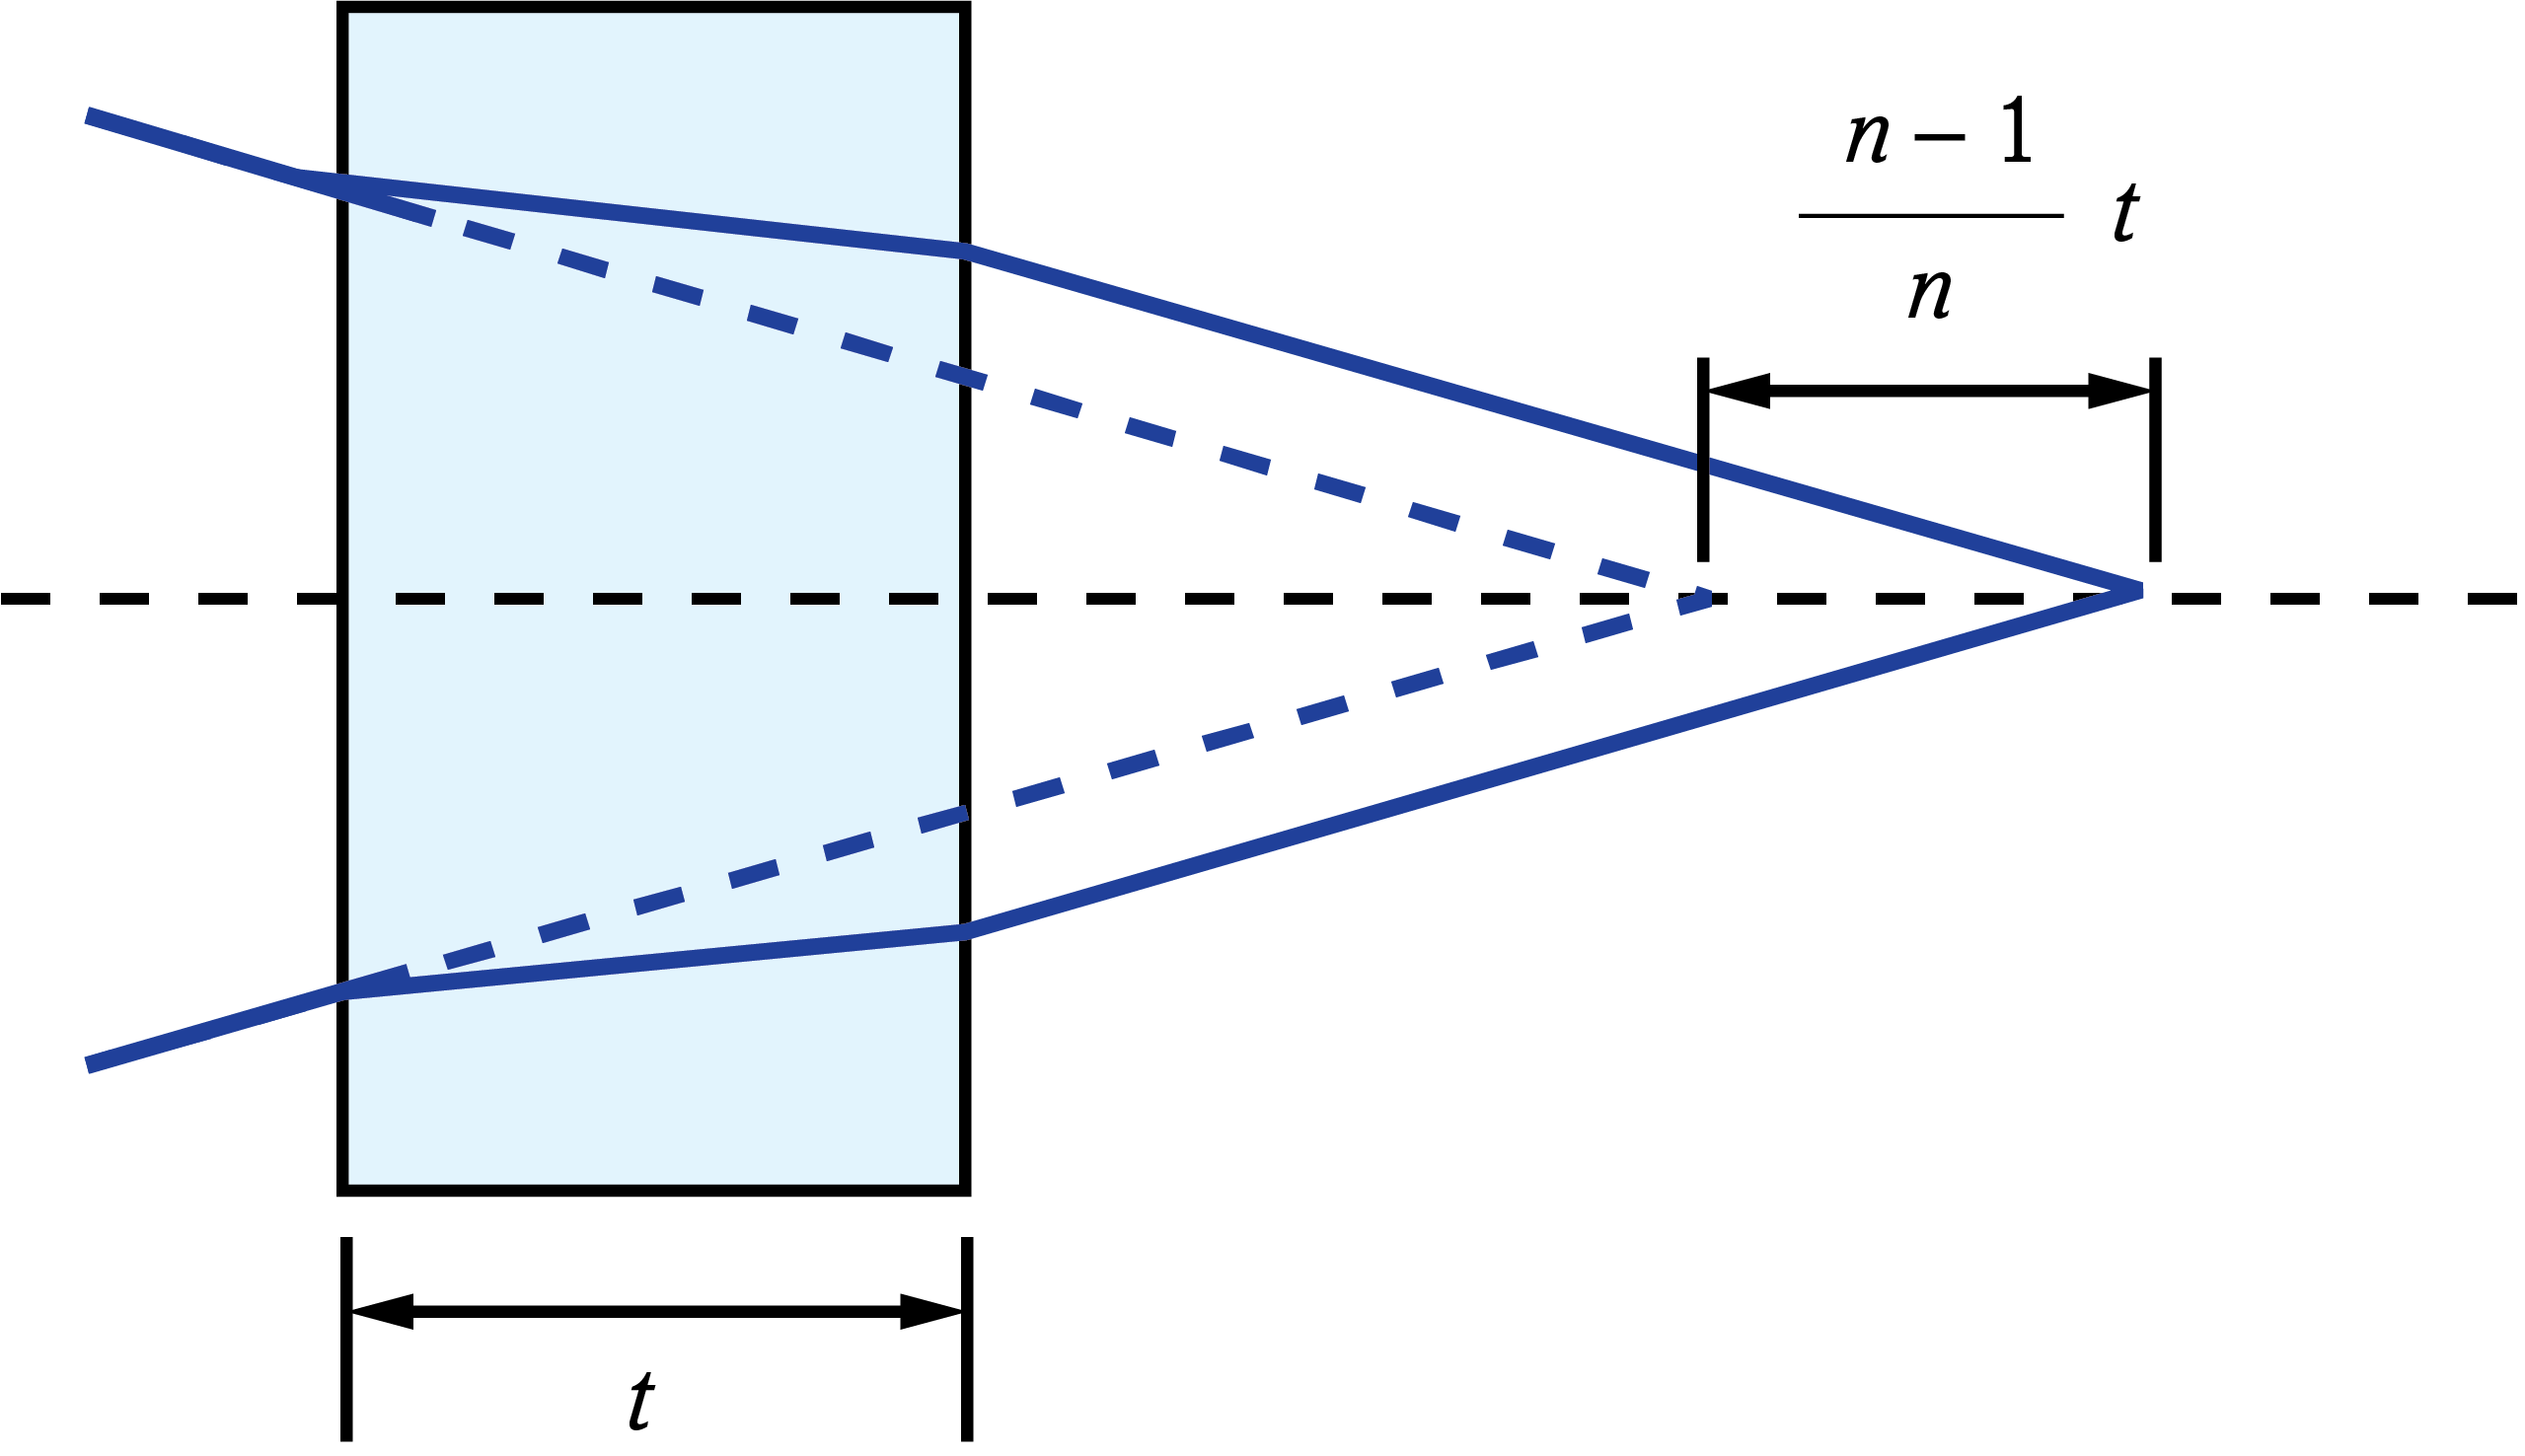 Image shift caused by plane parallel plate